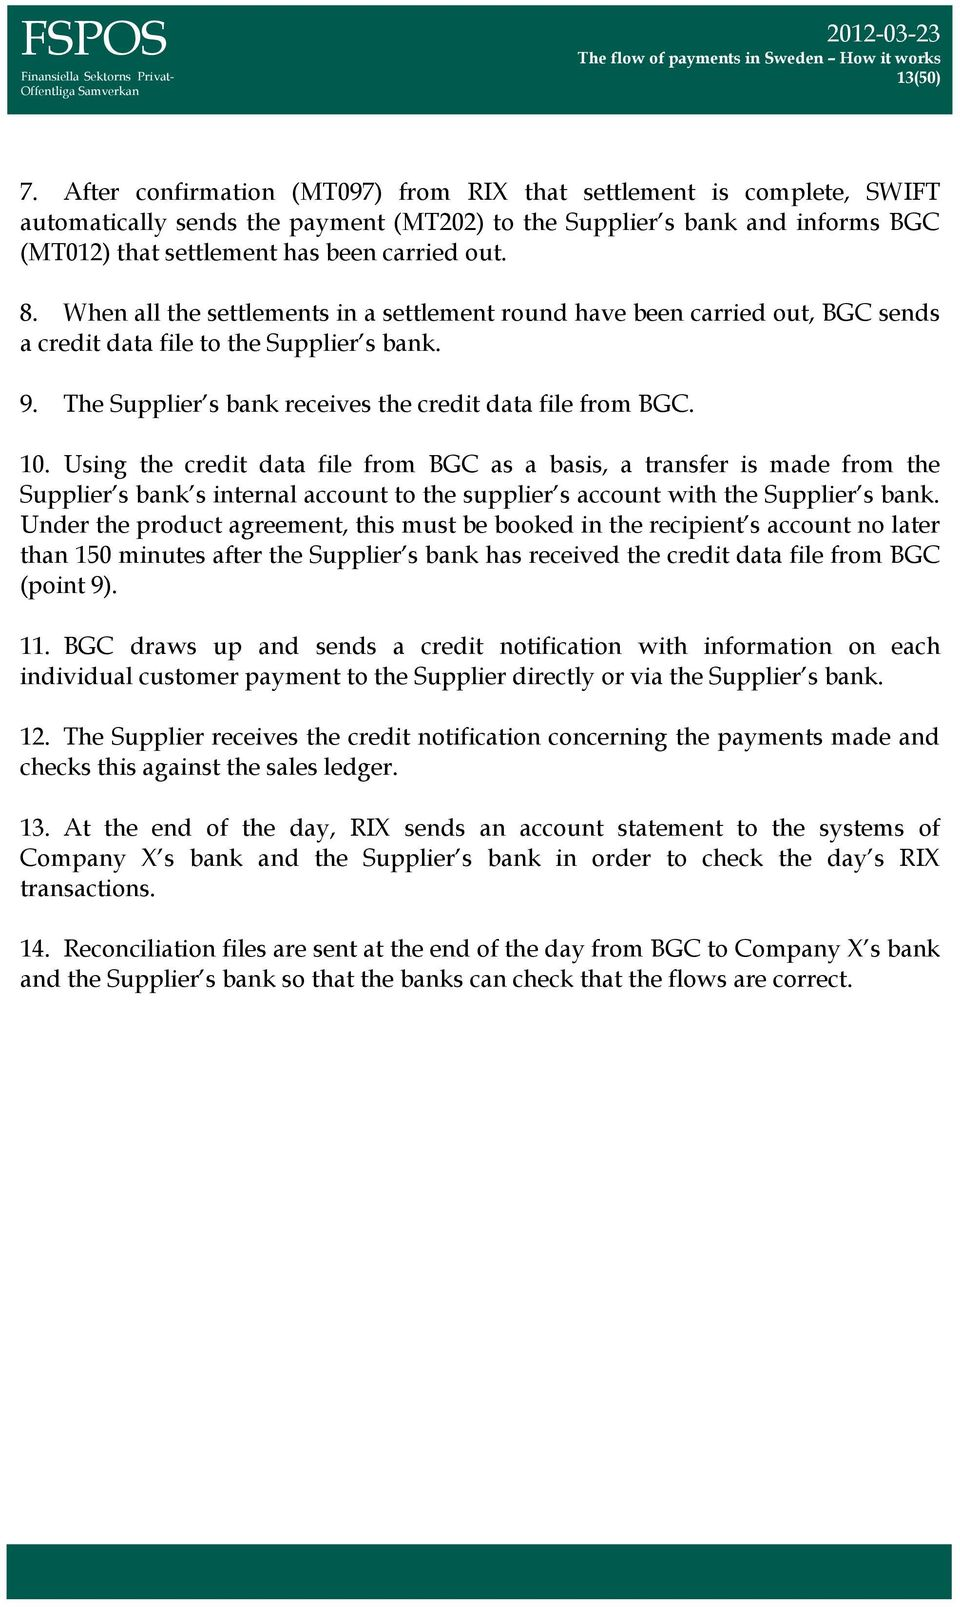 When all the settlements in a settlement round have been carried out, BGC sends a credit data file to the Supplier s bank. 9. The Supplier s bank receives the credit data file from BGC. 10.